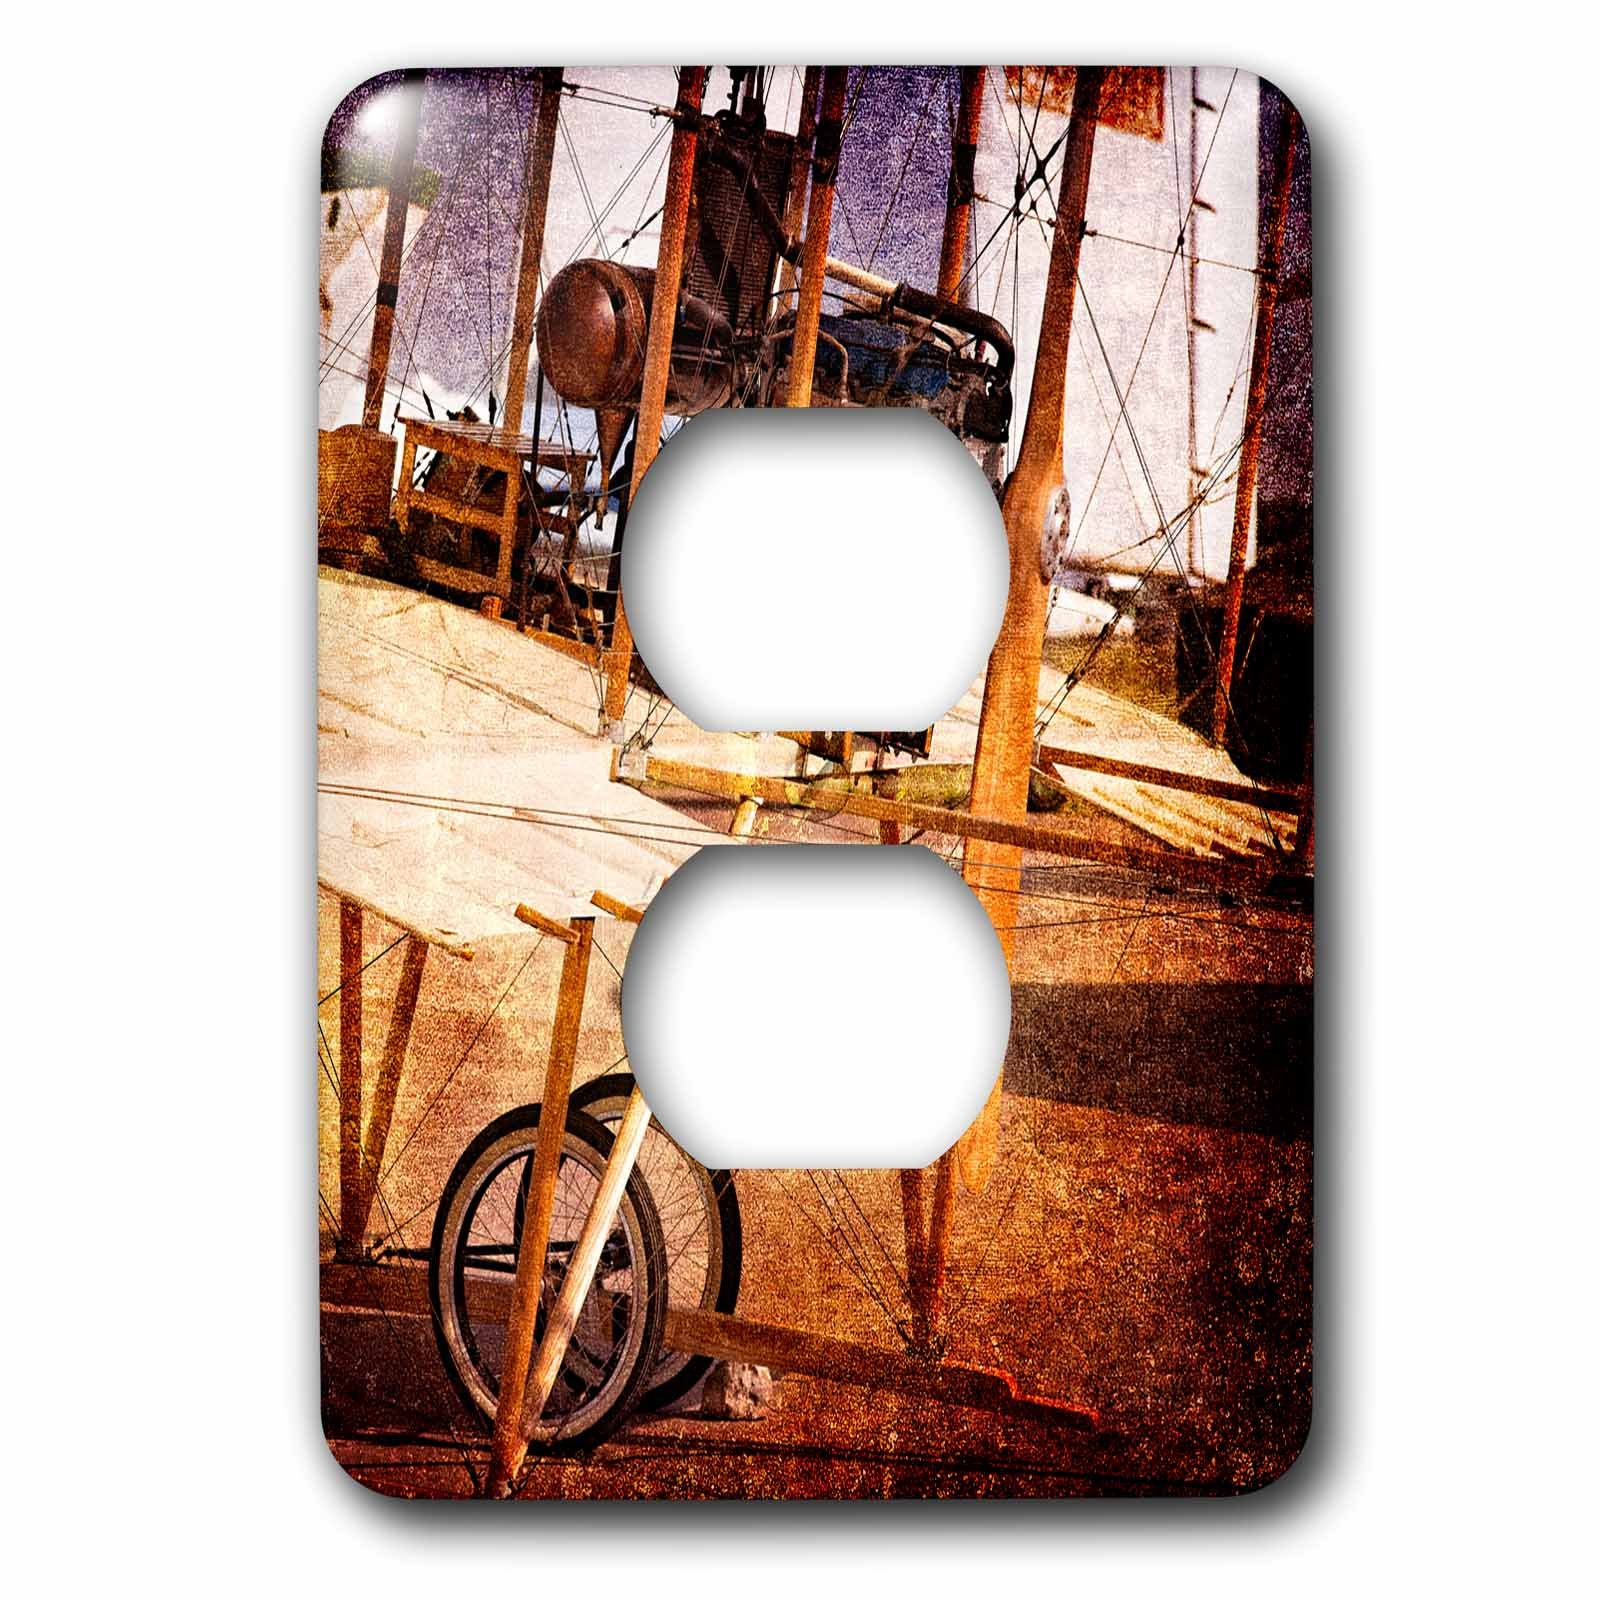 3dRose Alexis Photography - Transport Air - Abstracts of aviation - Engine and gear of ancient flying machine - Light Switch Covers - 2 plug outlet cover (lsp_271985_6) by 3dRose (Image #1)